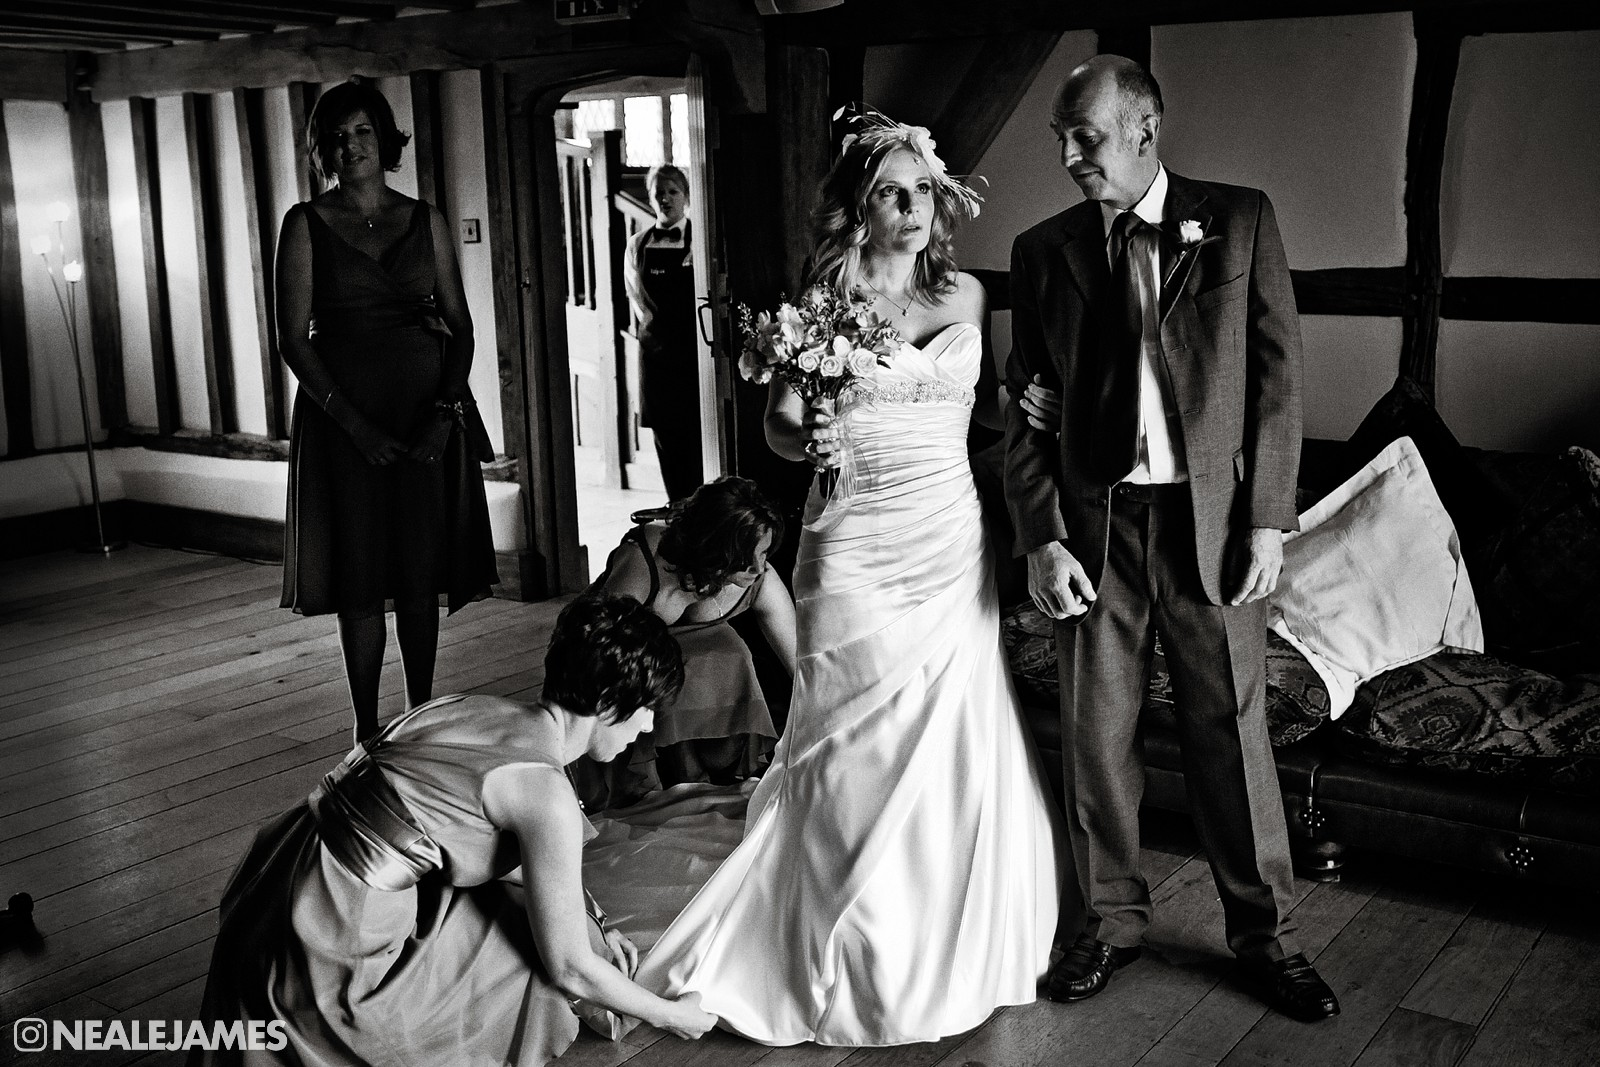 A black and white photo of a bride waiting for the wedding ceremony at Cain Manor